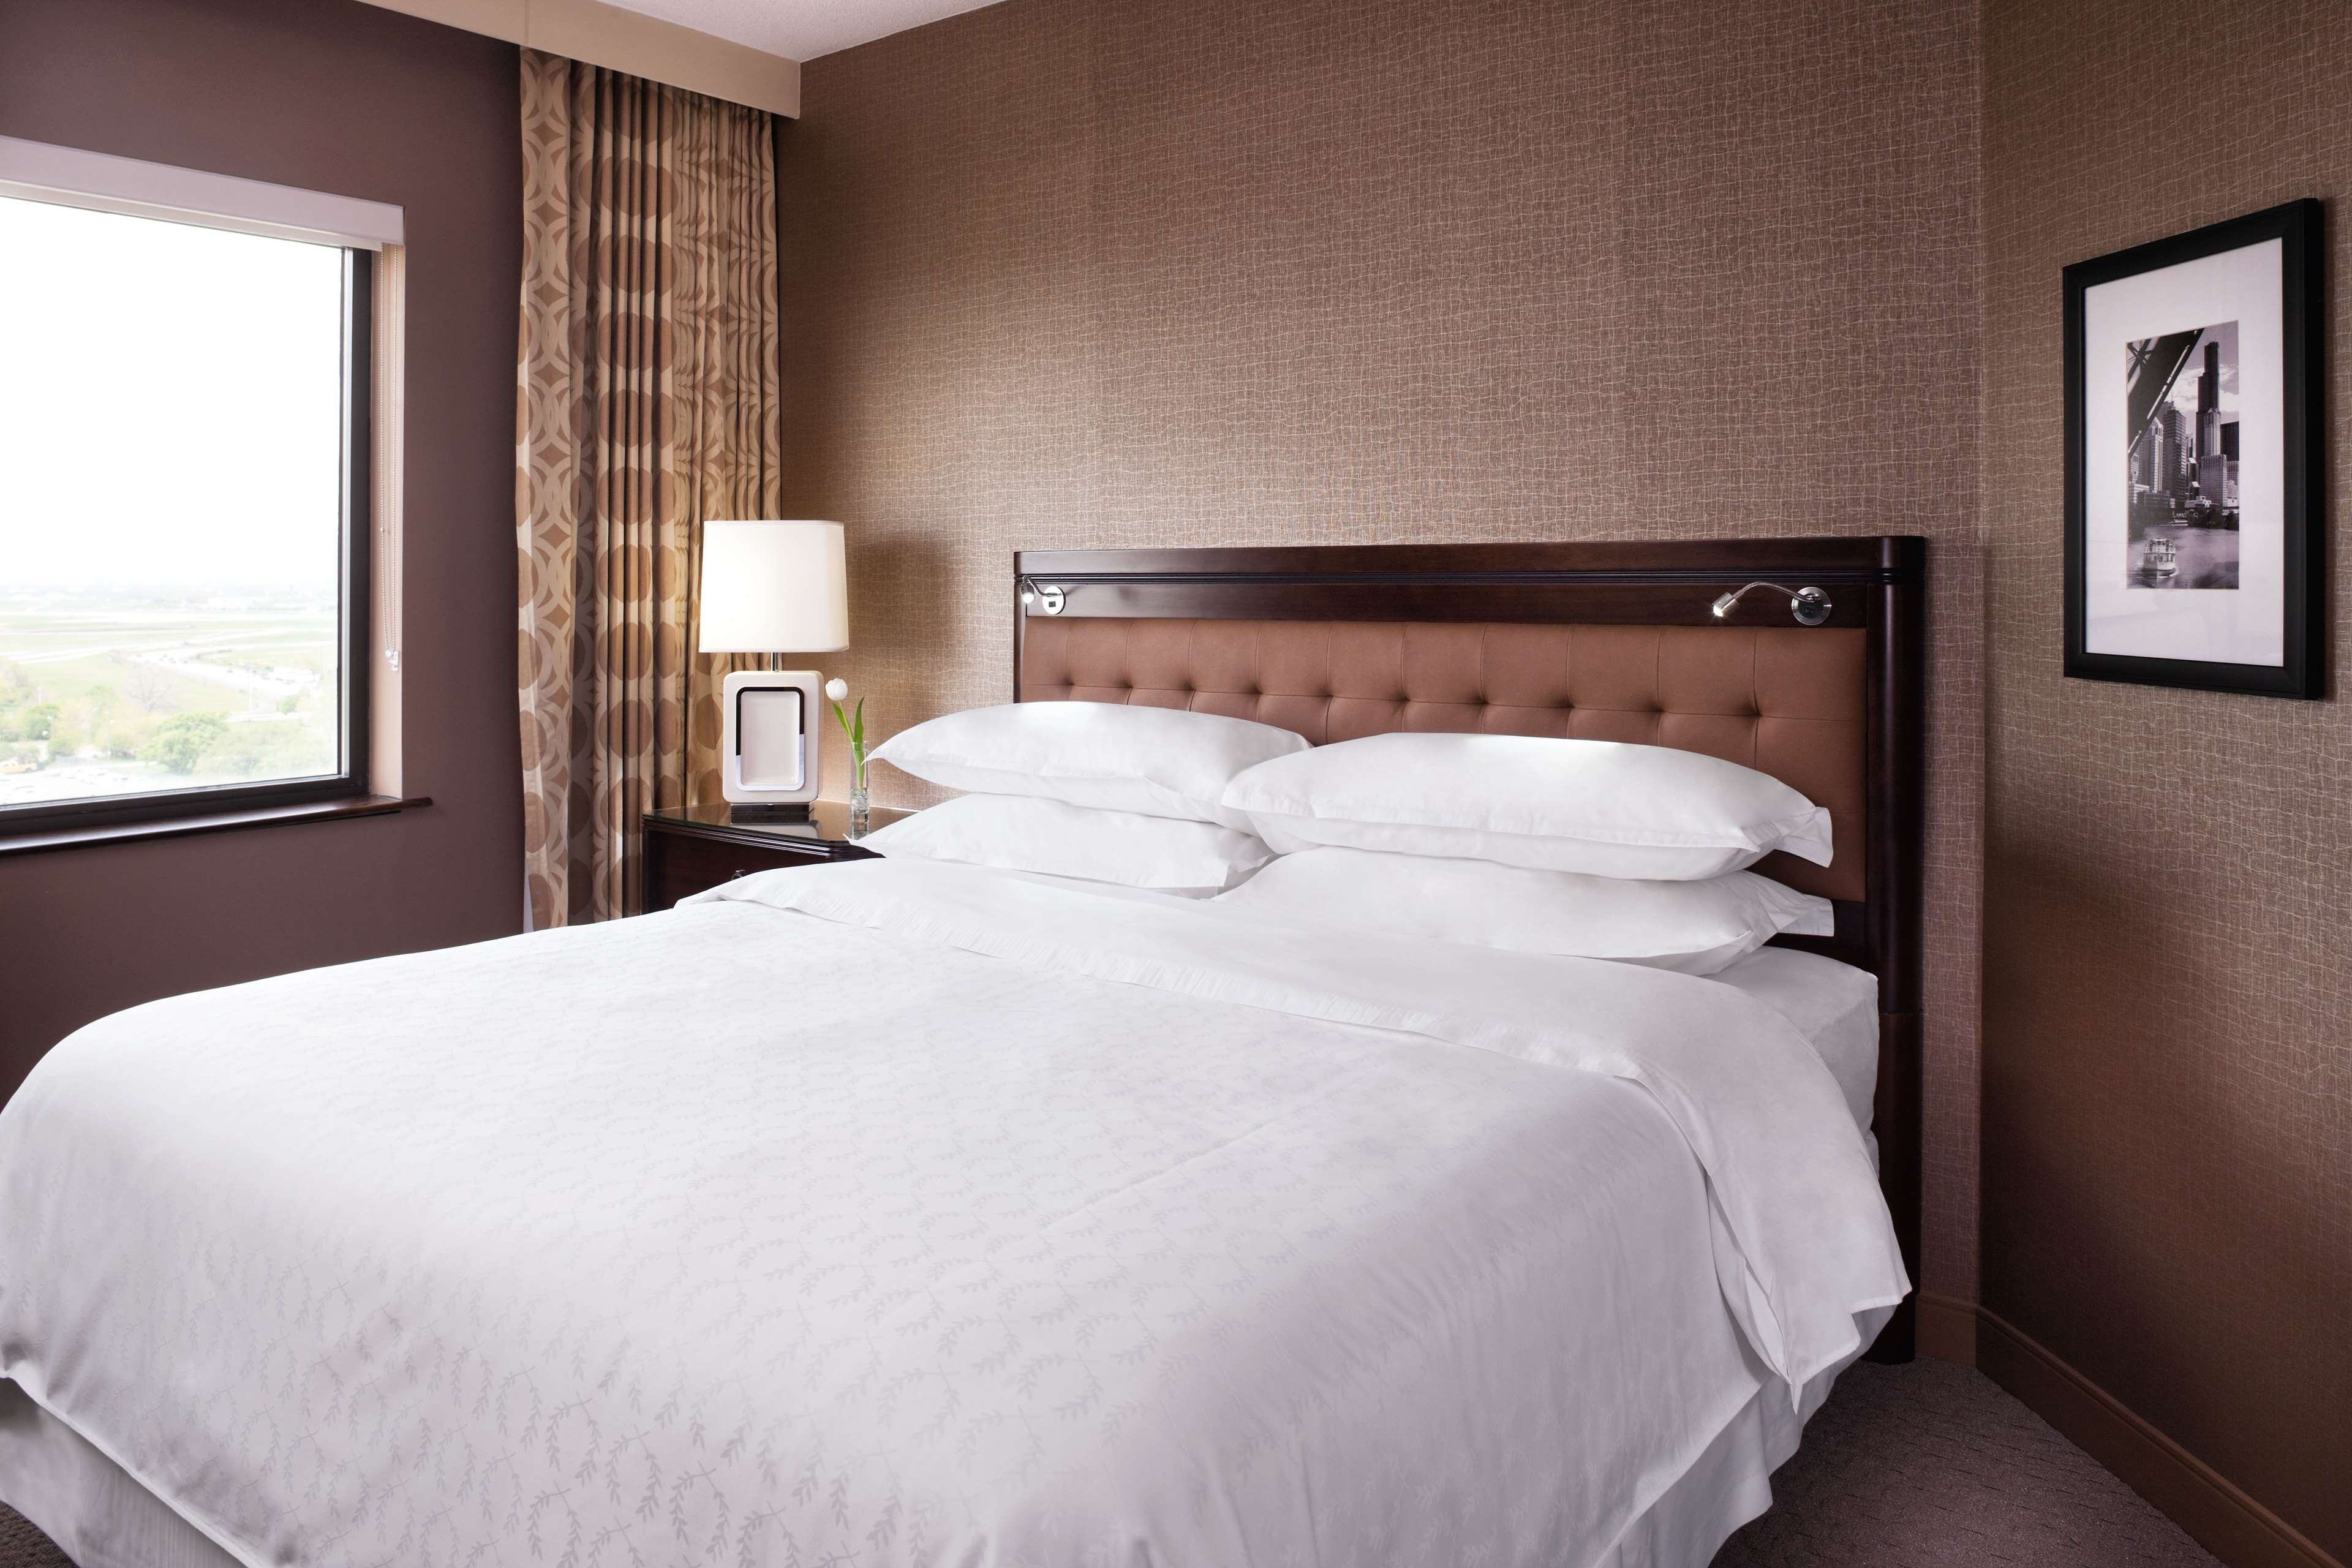 Sheraton Suites Chicago O'Hare image 3